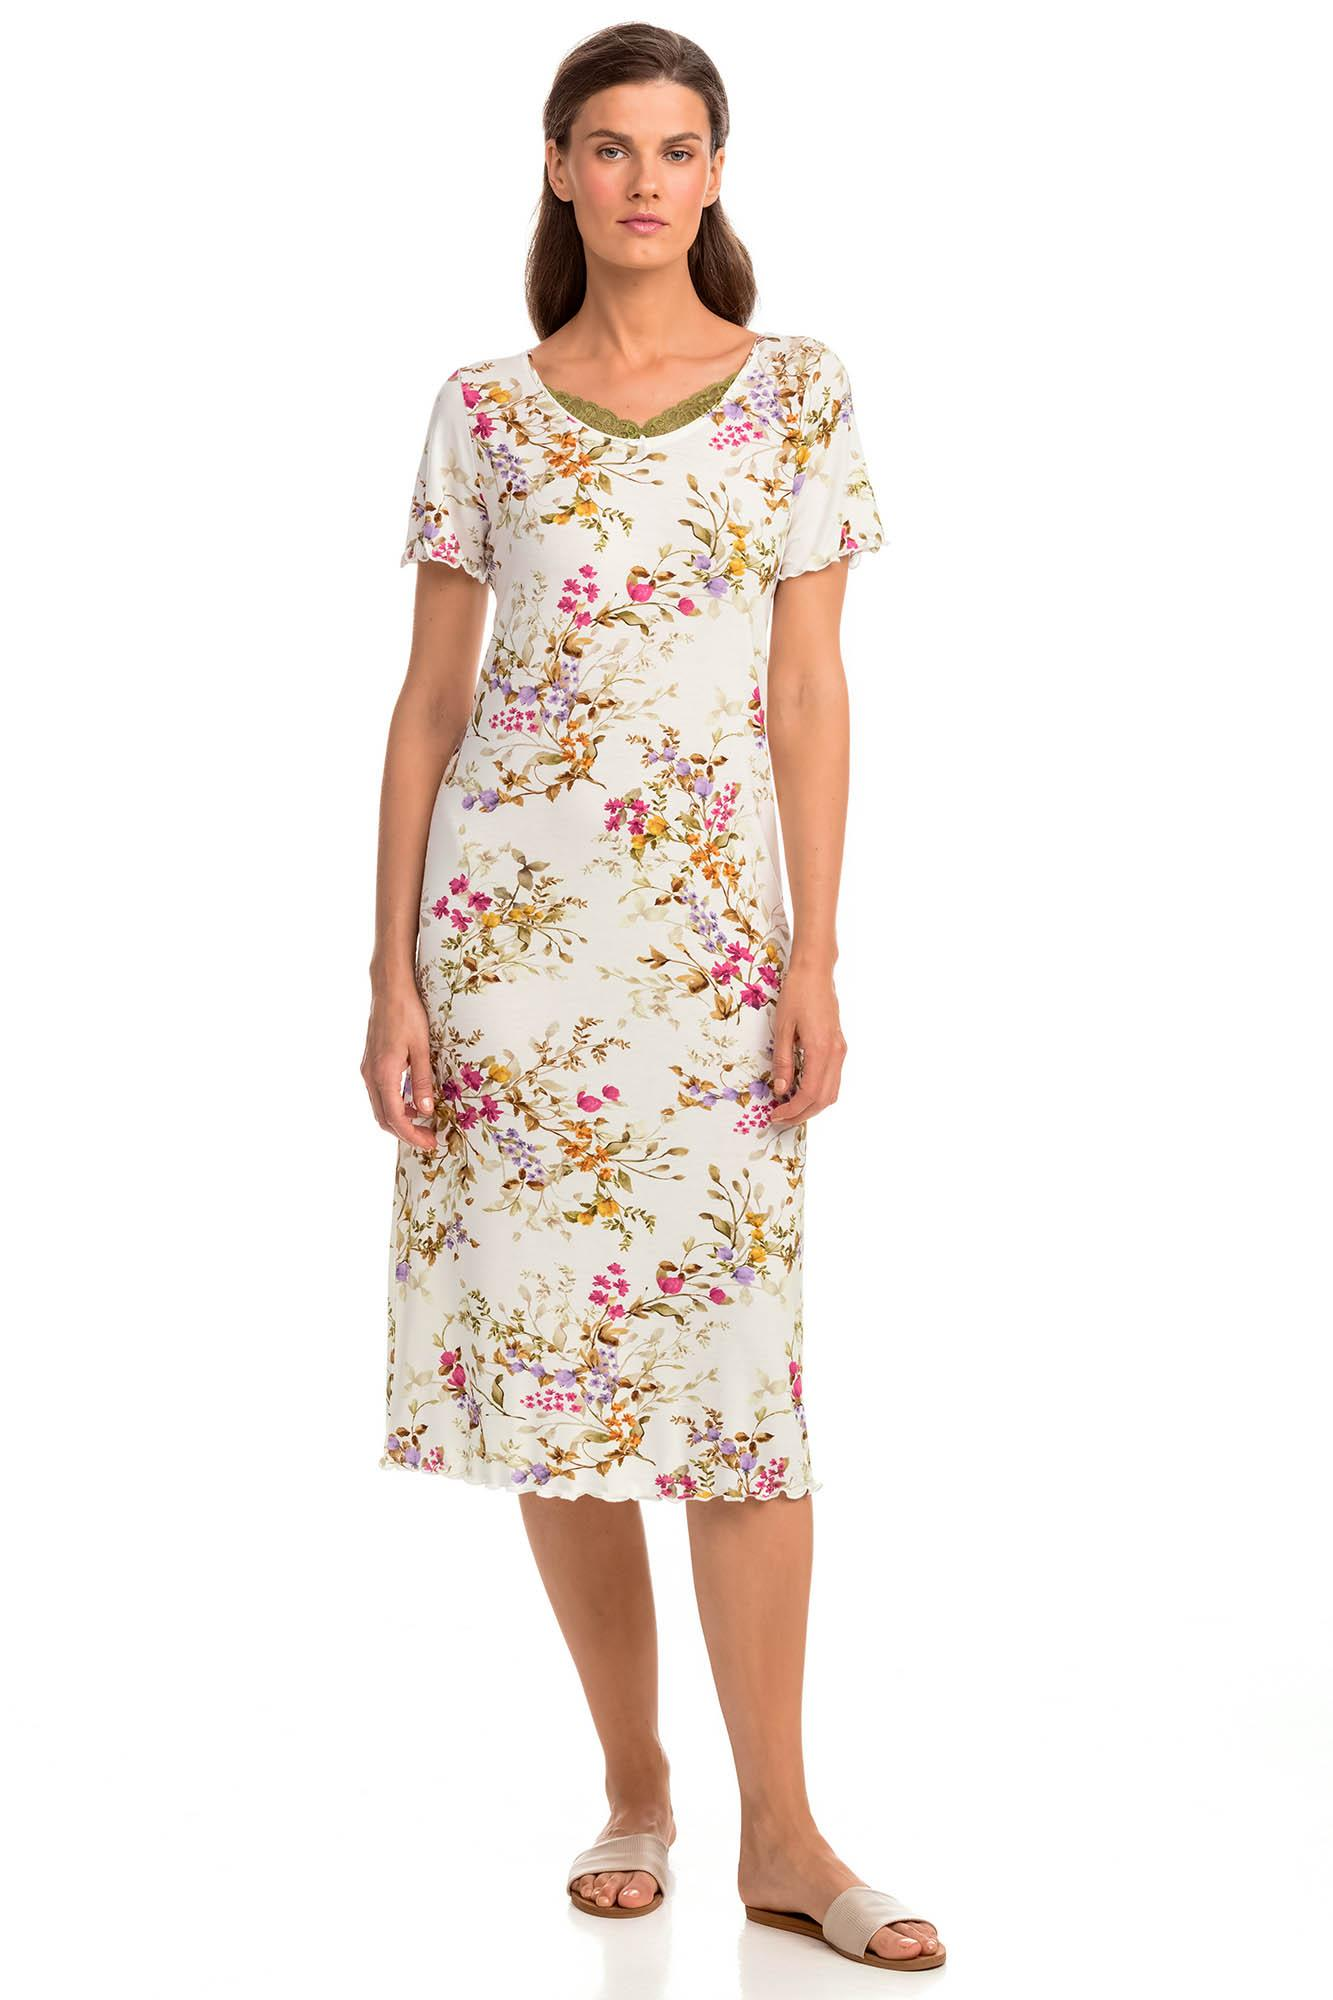 Floral Nightgown with Lace Details